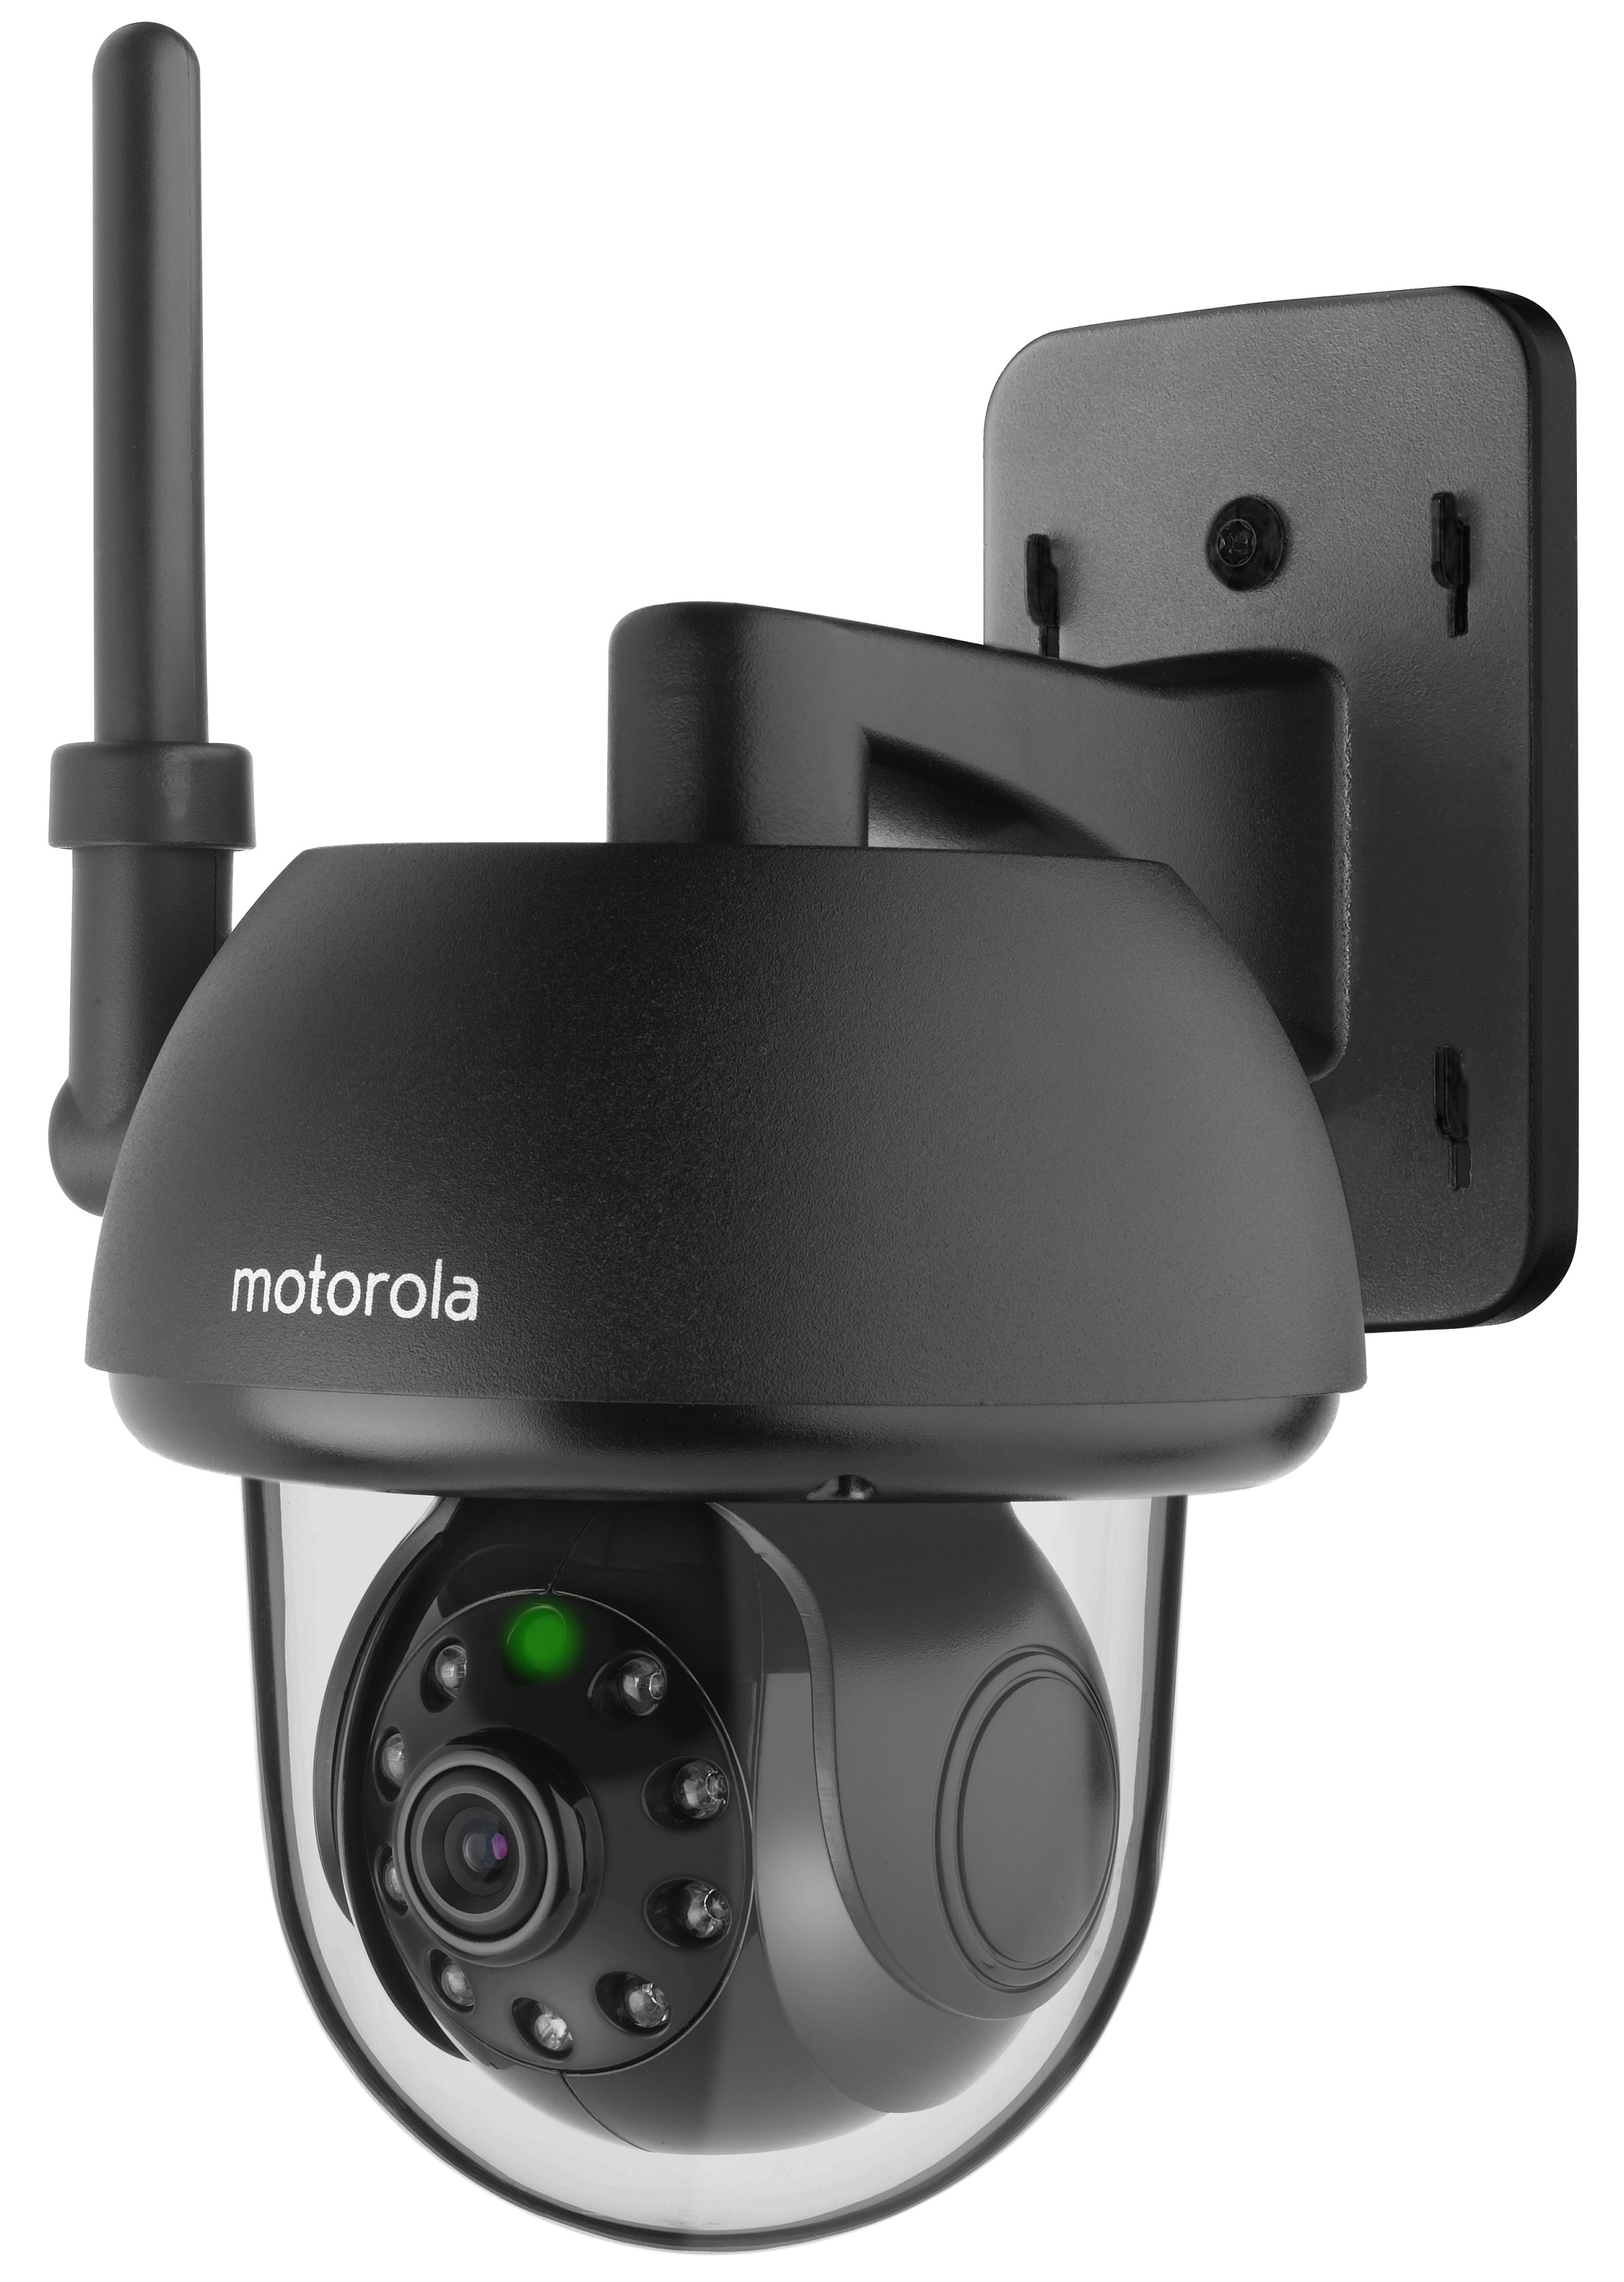 Motorola Wifi outdoor kamera Focus73